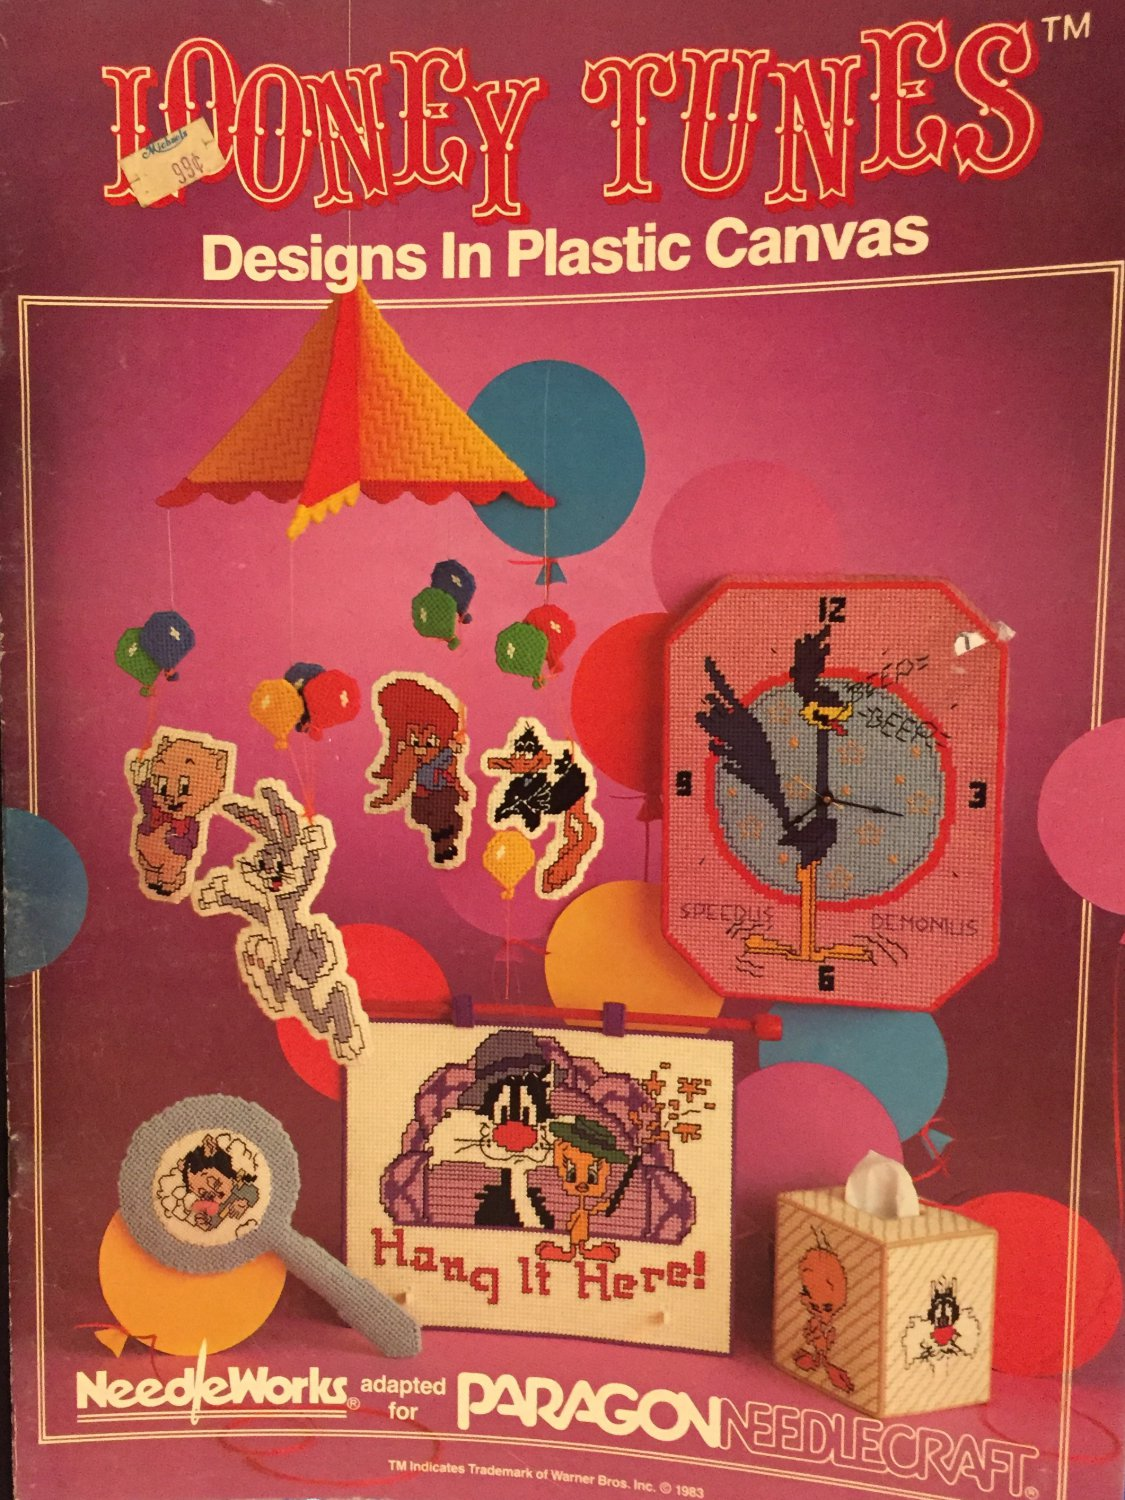 Looney Tunes in Plastic Canvas Pattern book 2008 Needleworks for Paragon Needlecraft